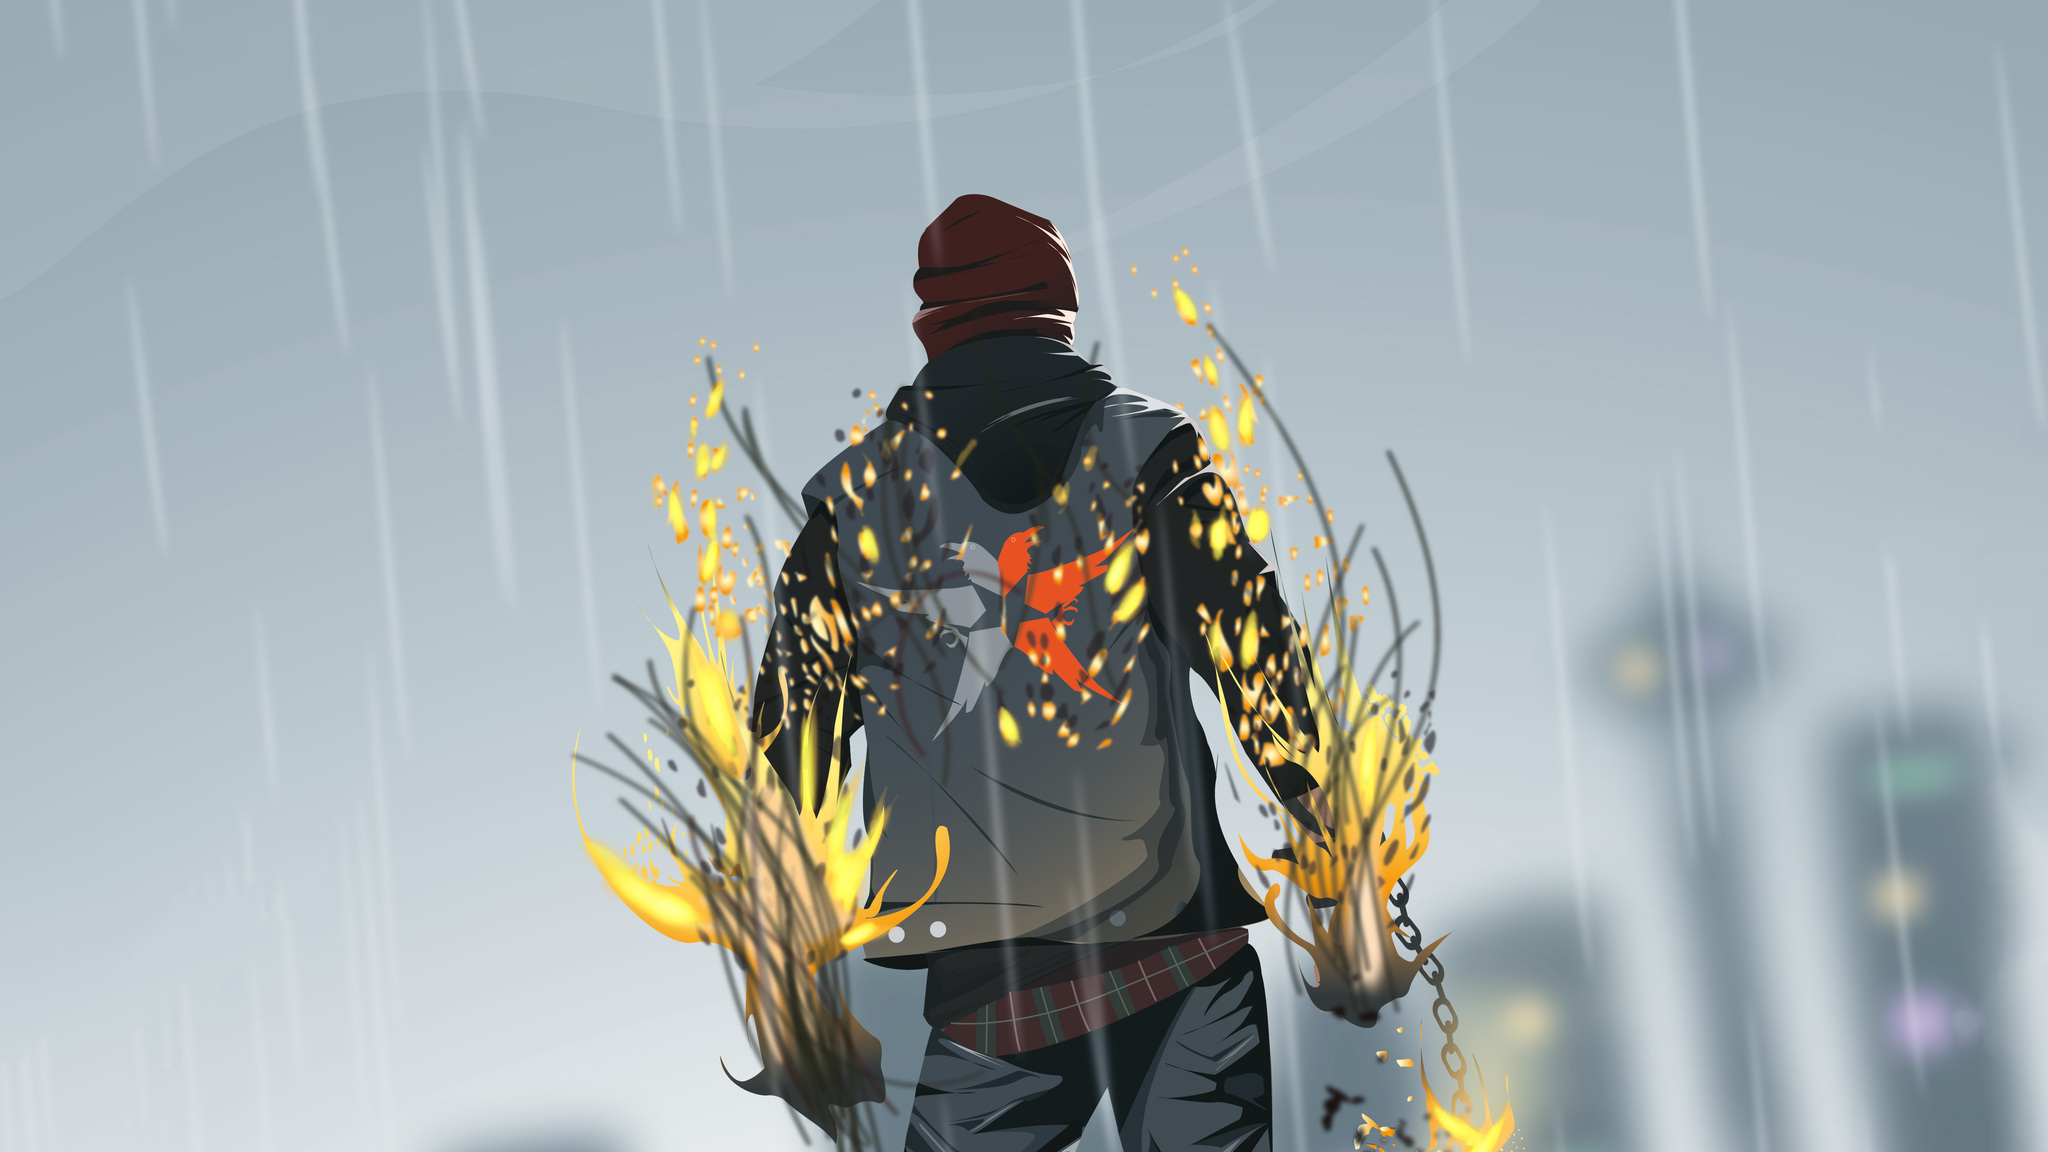 infamous-second-son-game-4k-f8.jpg